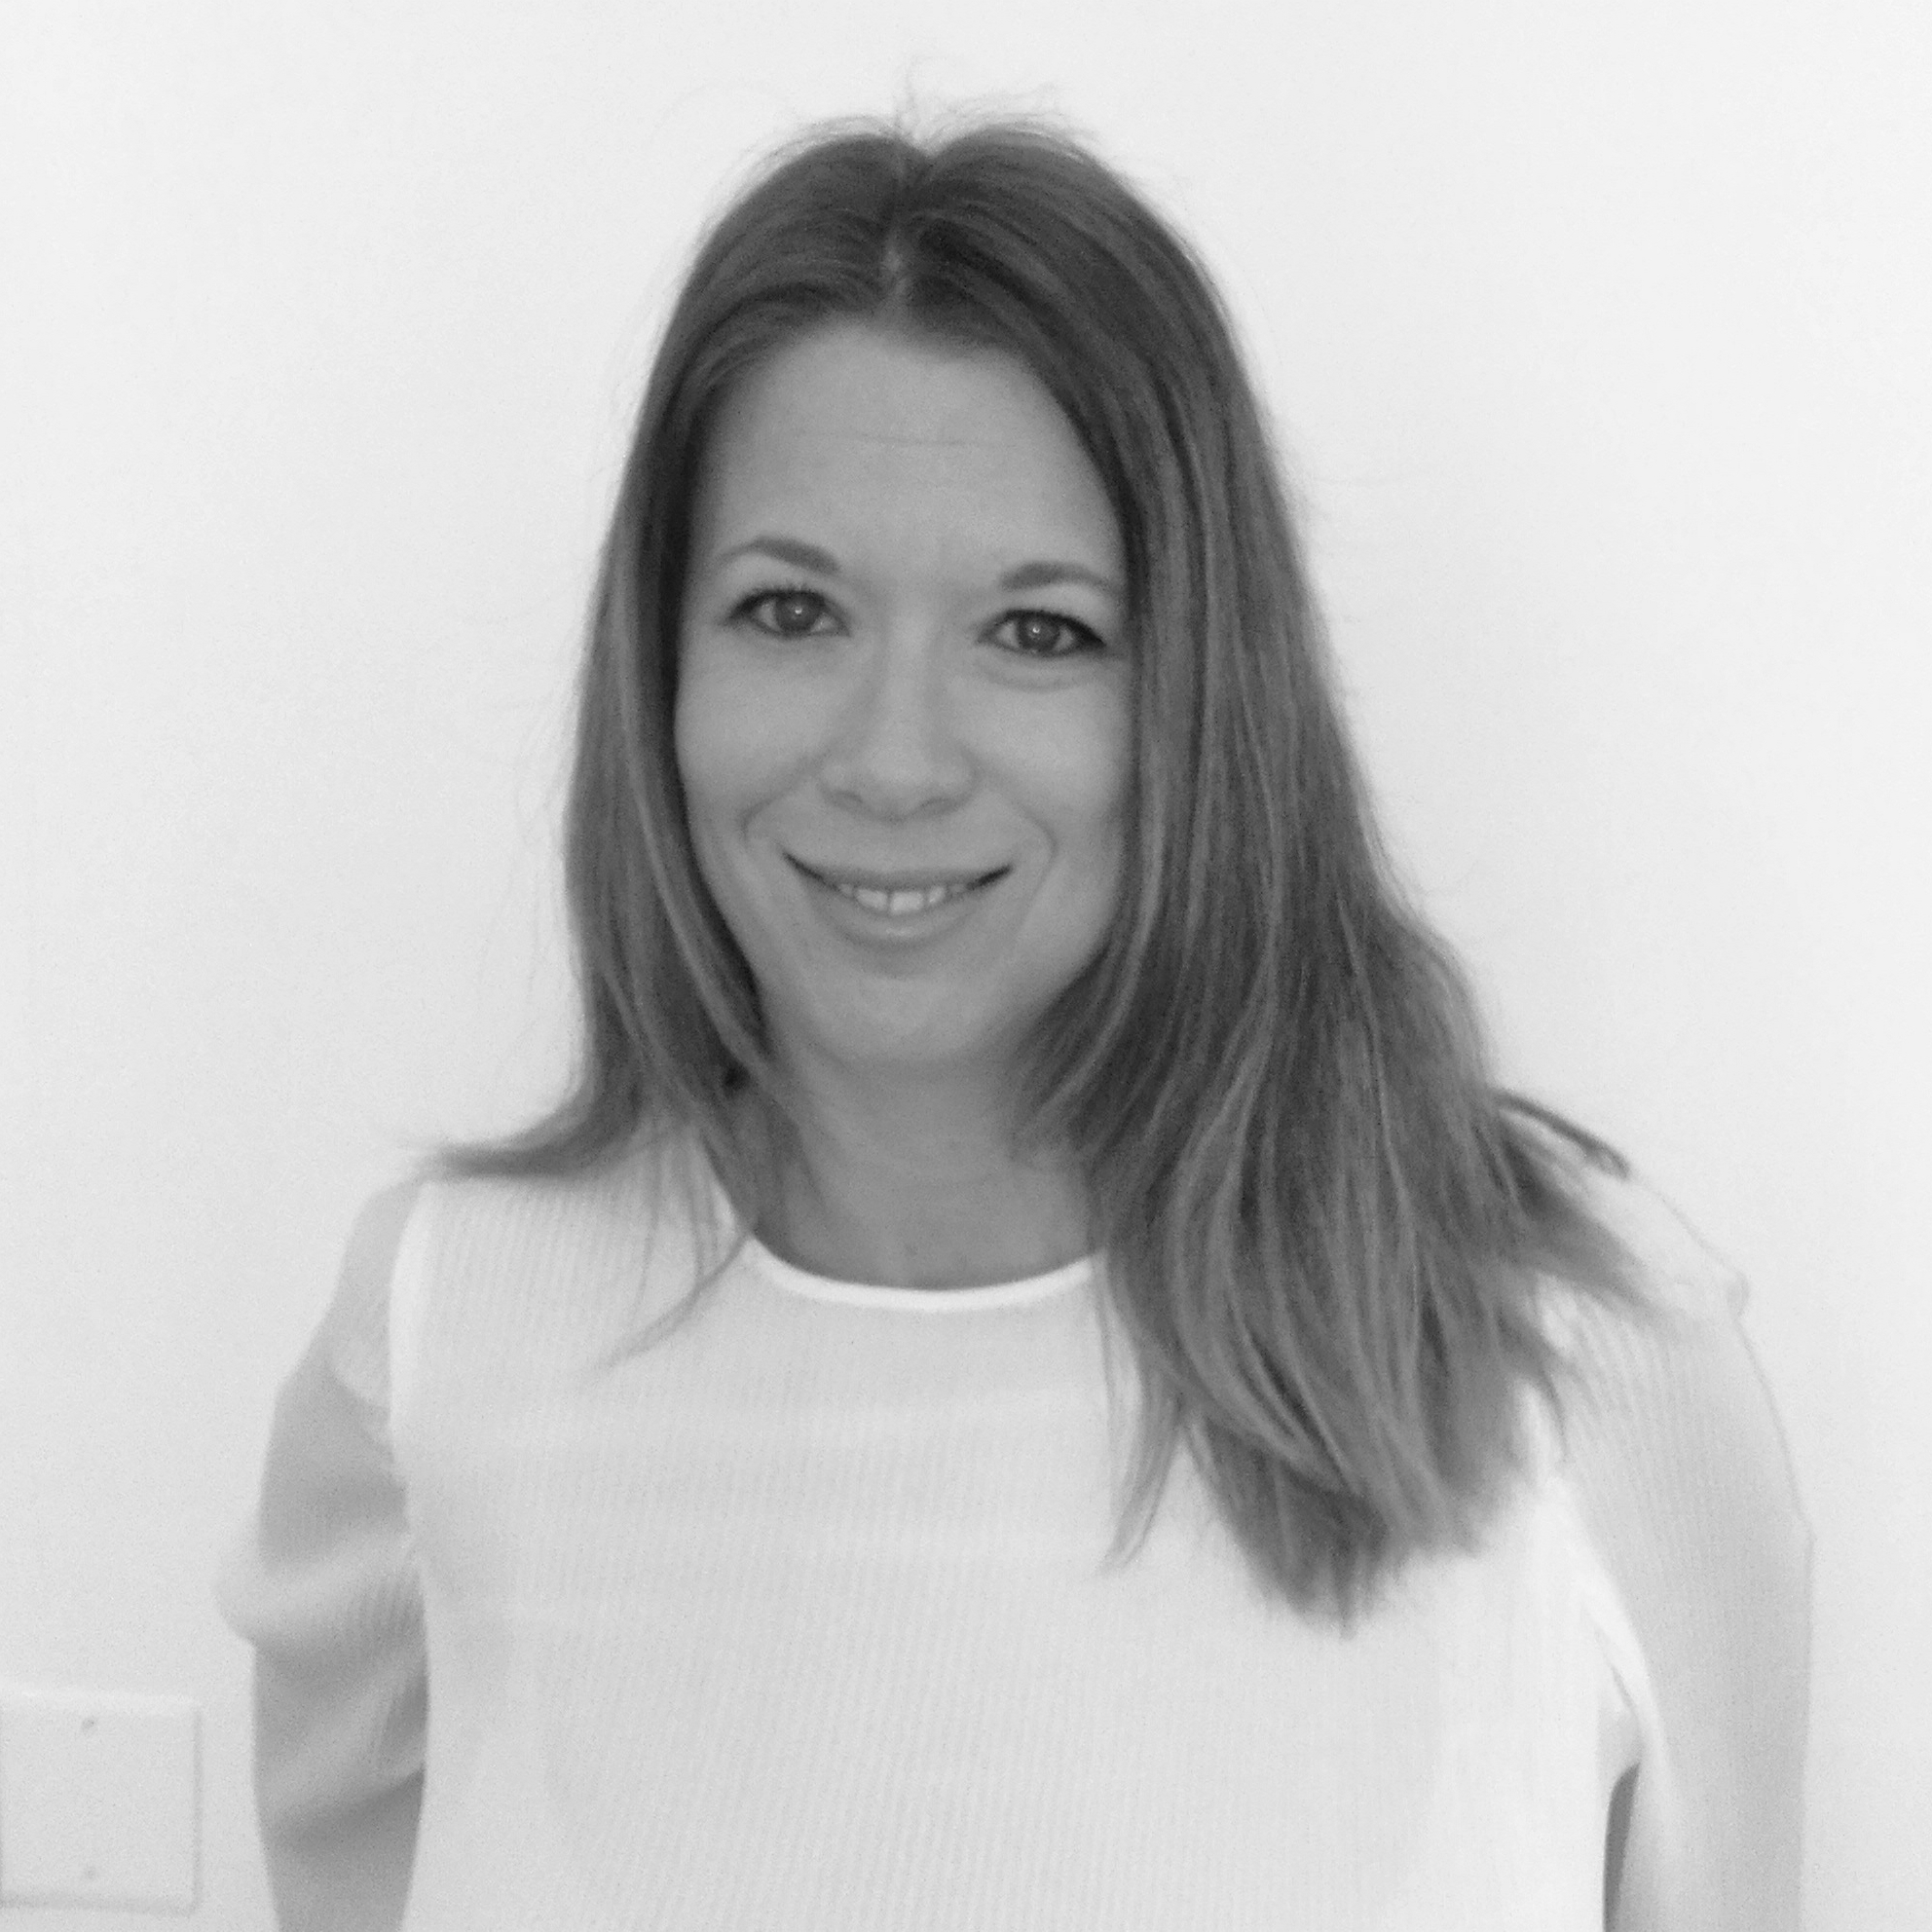 Valérie Soyer agent immobilier 13007 Marseille